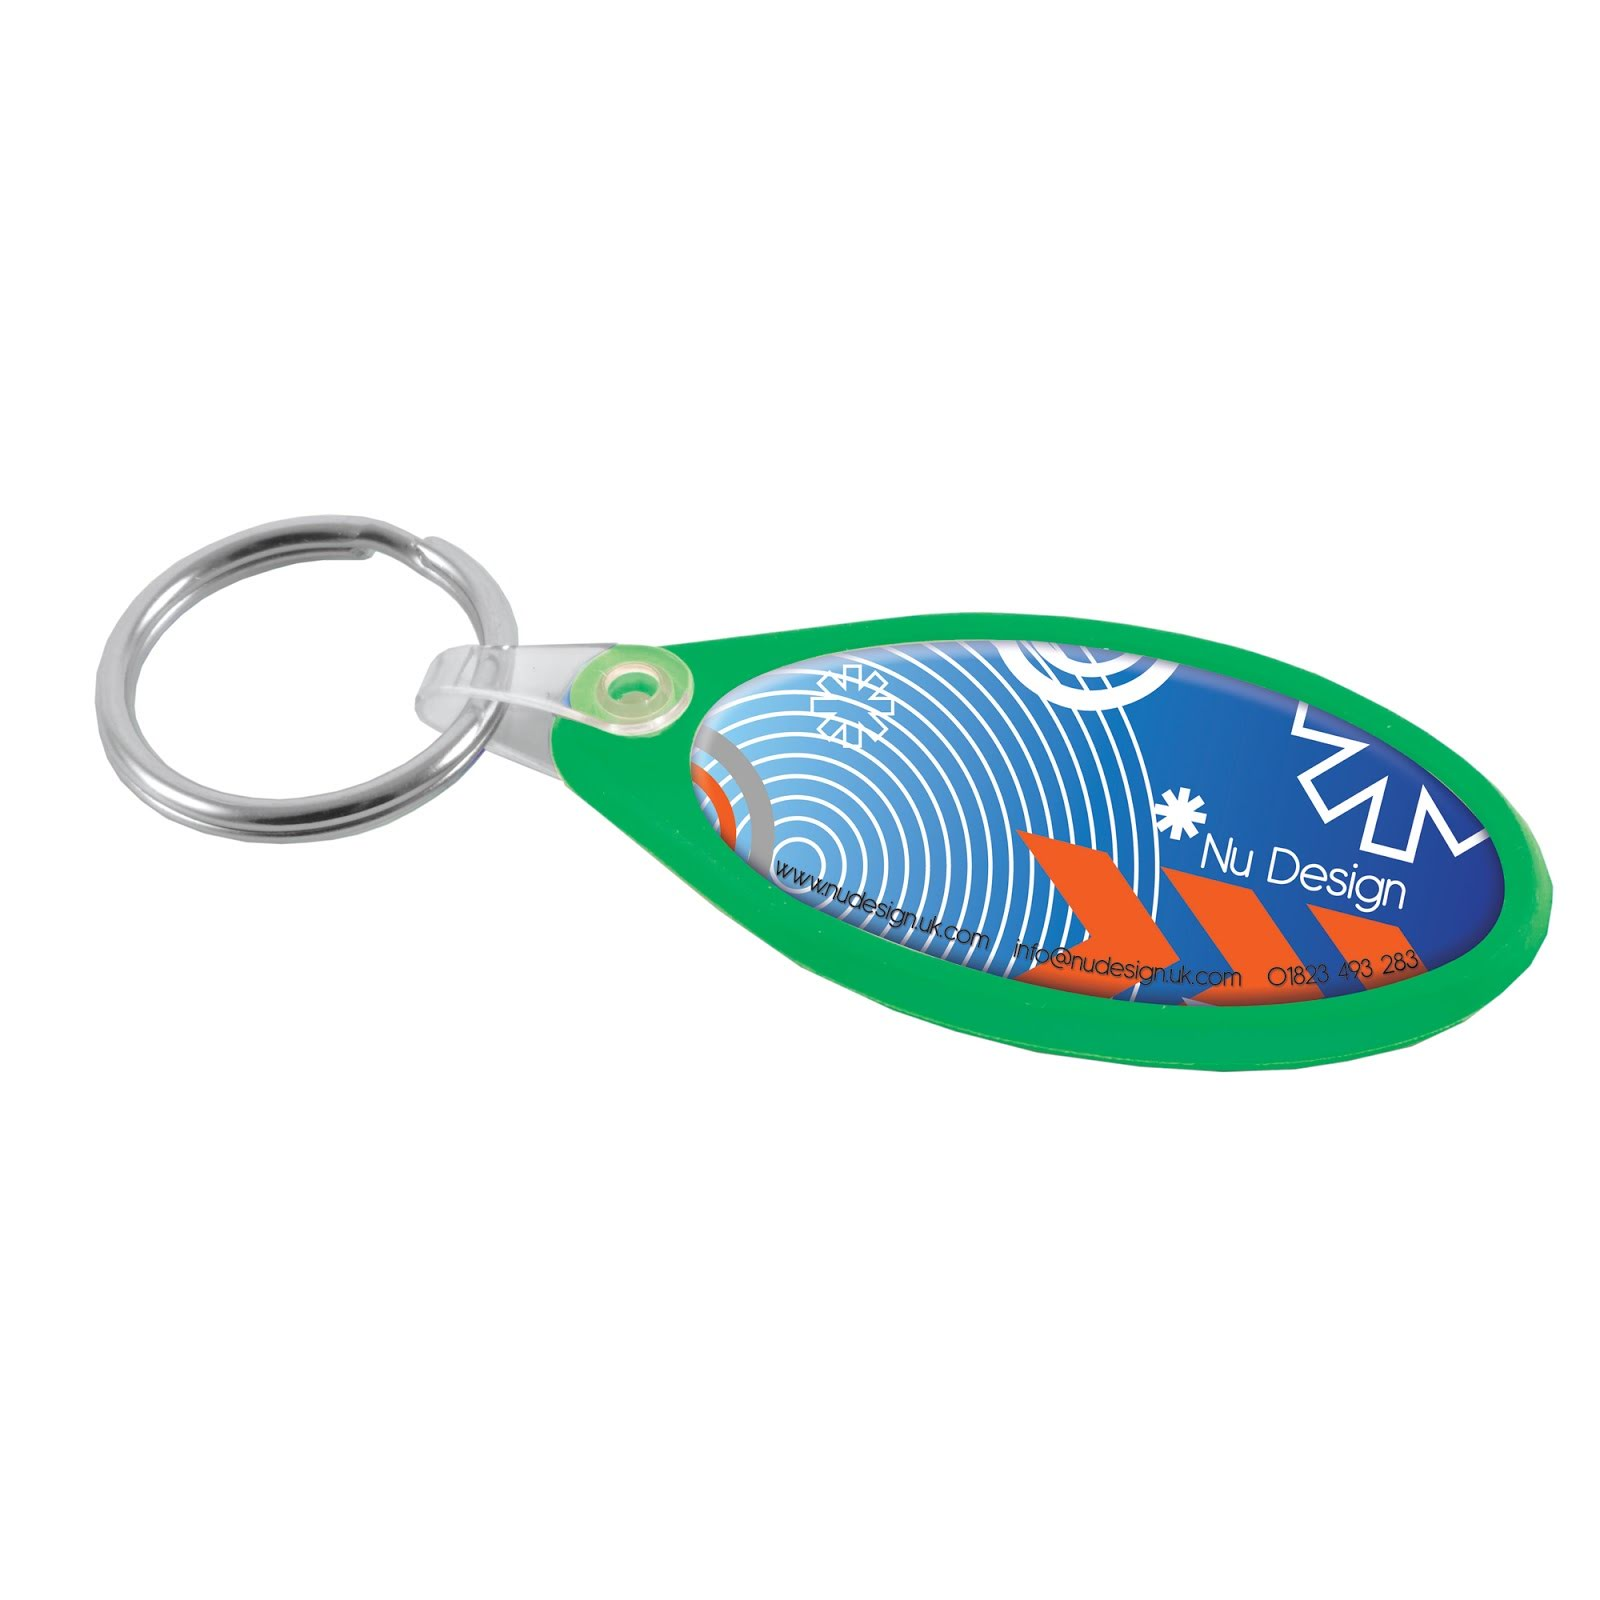 Oval Keyrings with Digital Full Colour Print